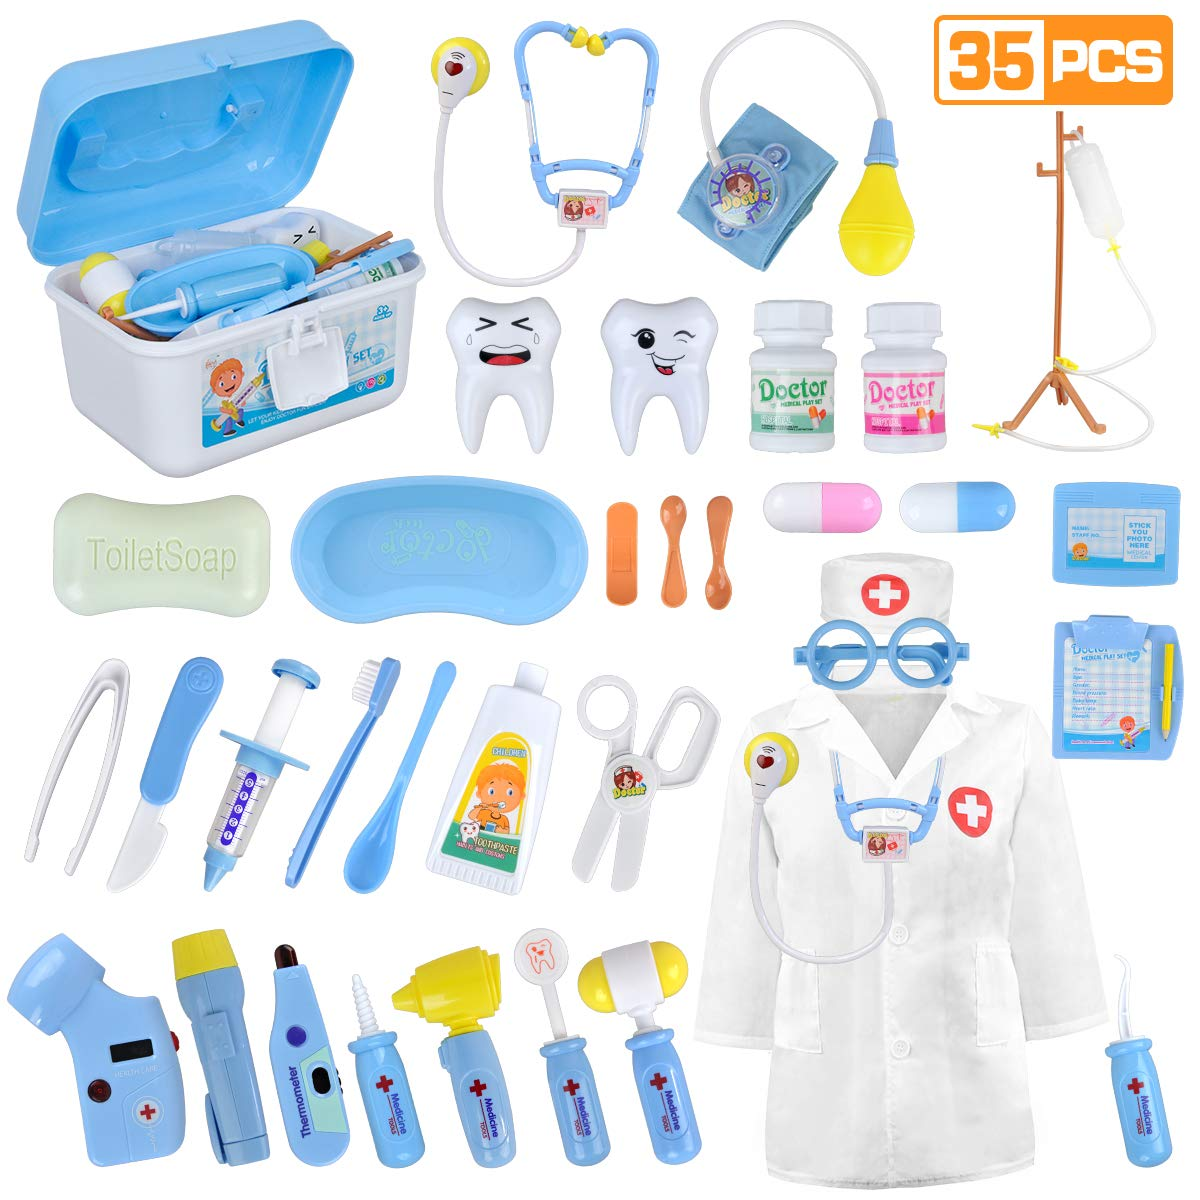 LOYO Medical Kit for Kids - 35 Pieces Doctor Pretend Play Equipment, Dentist Kit for Kids, Doctor Play Set with Case by LOYO